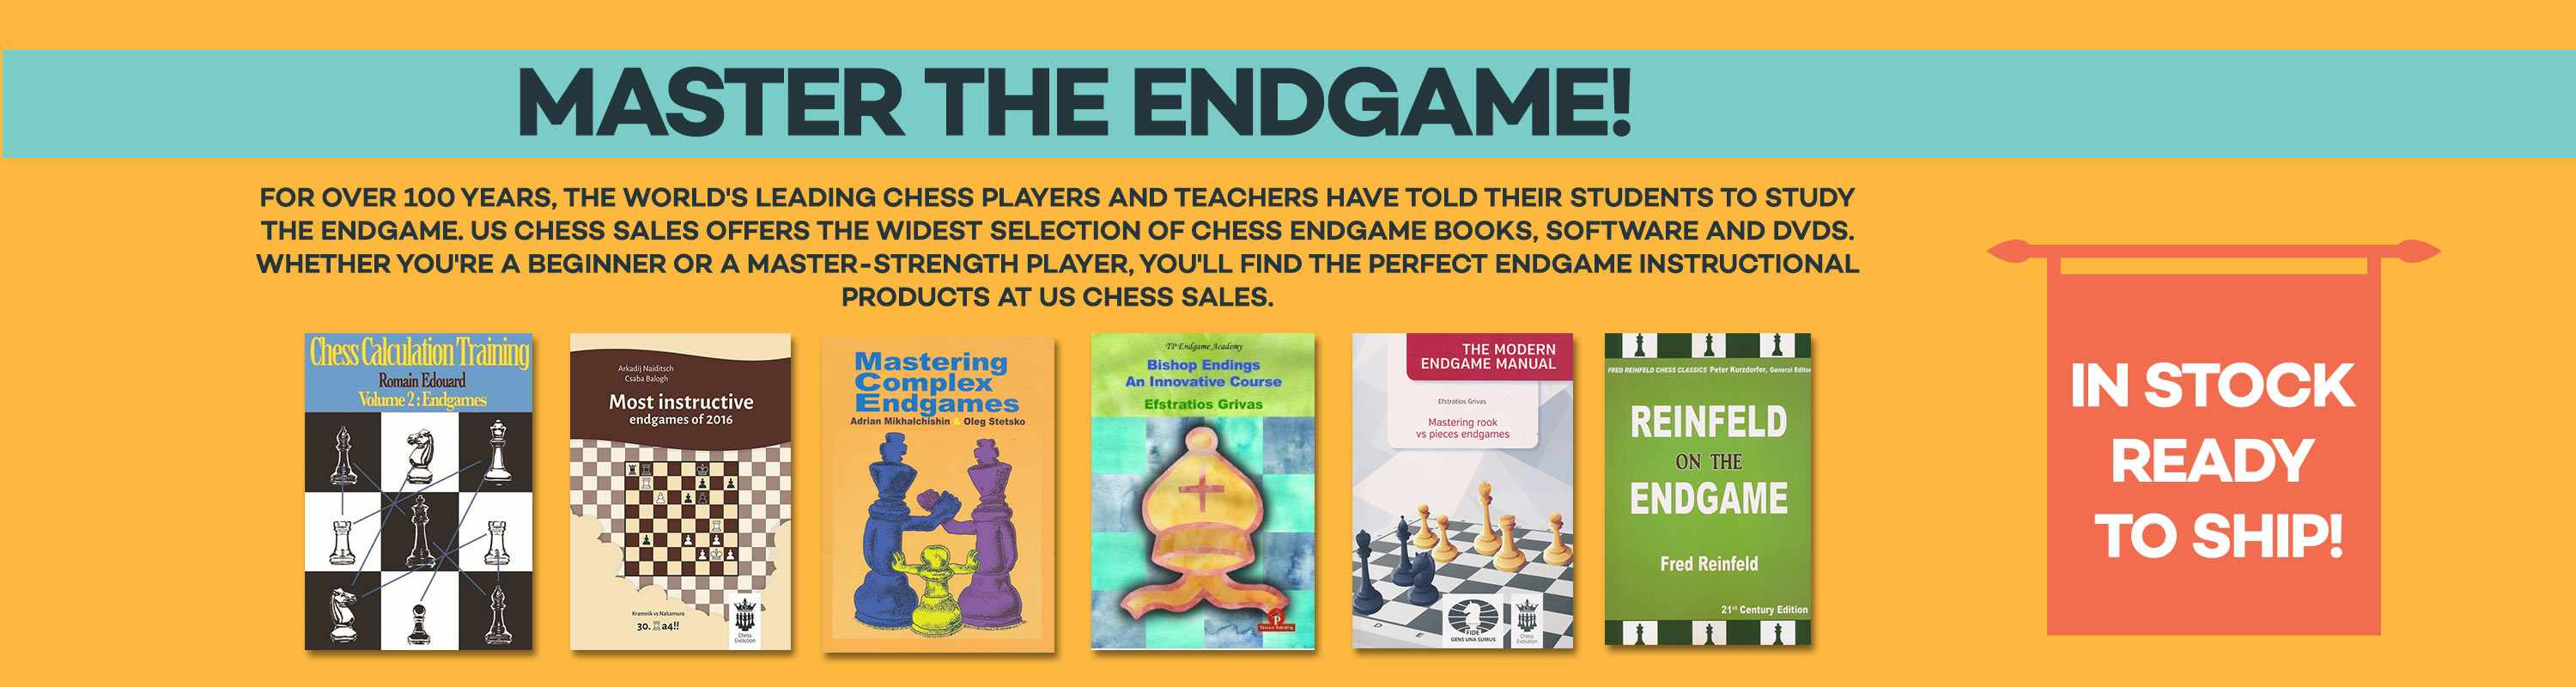 Master the Endgame! Study the Endgame at US Chess Sales!